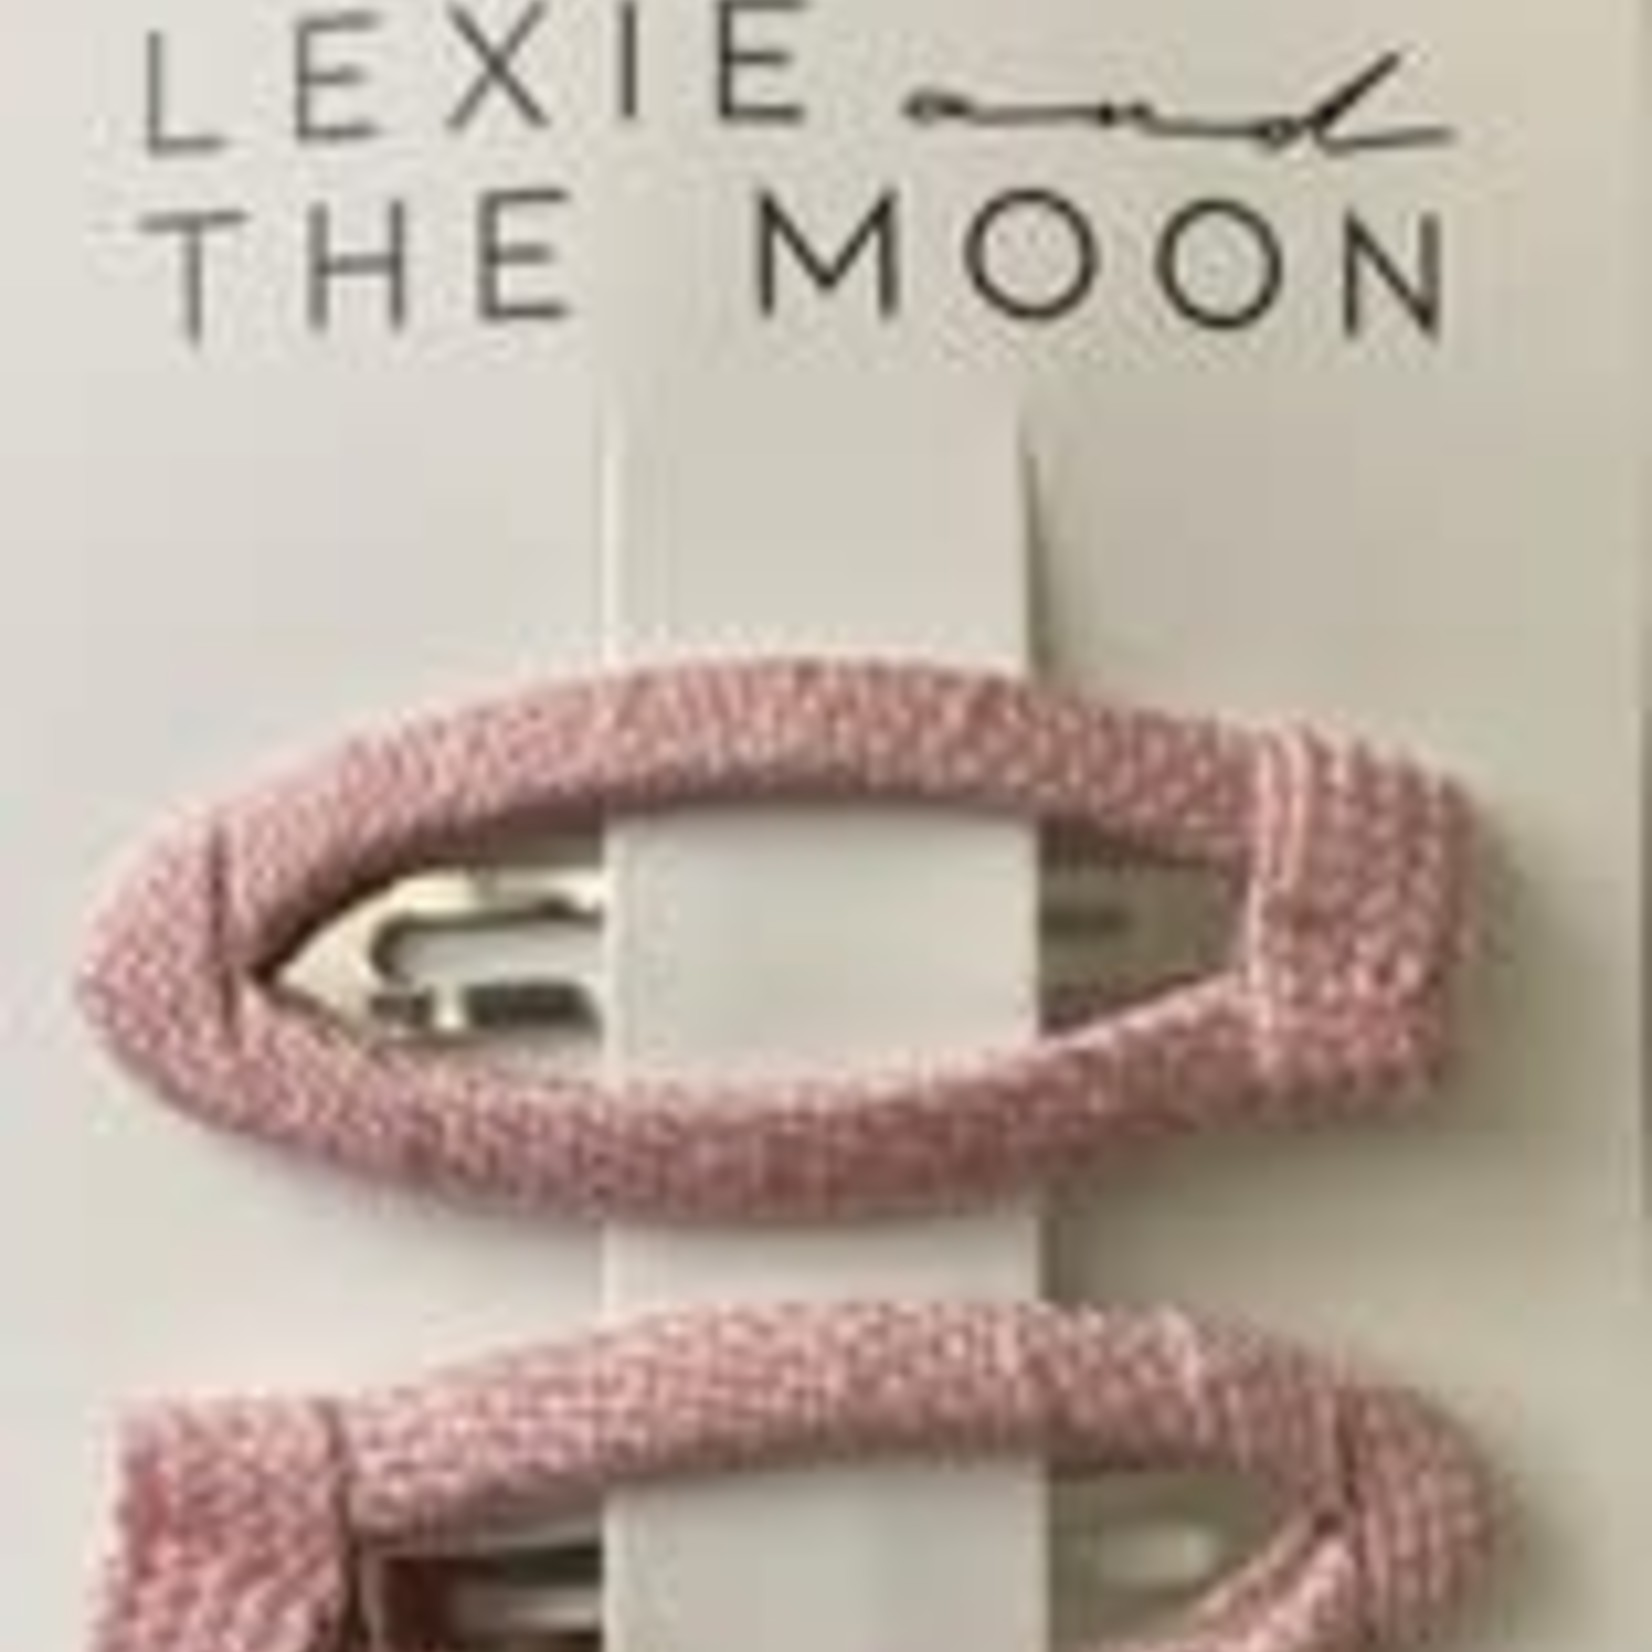 LEXIE AND THE MOON LEXIE AND THE MOON haarclips